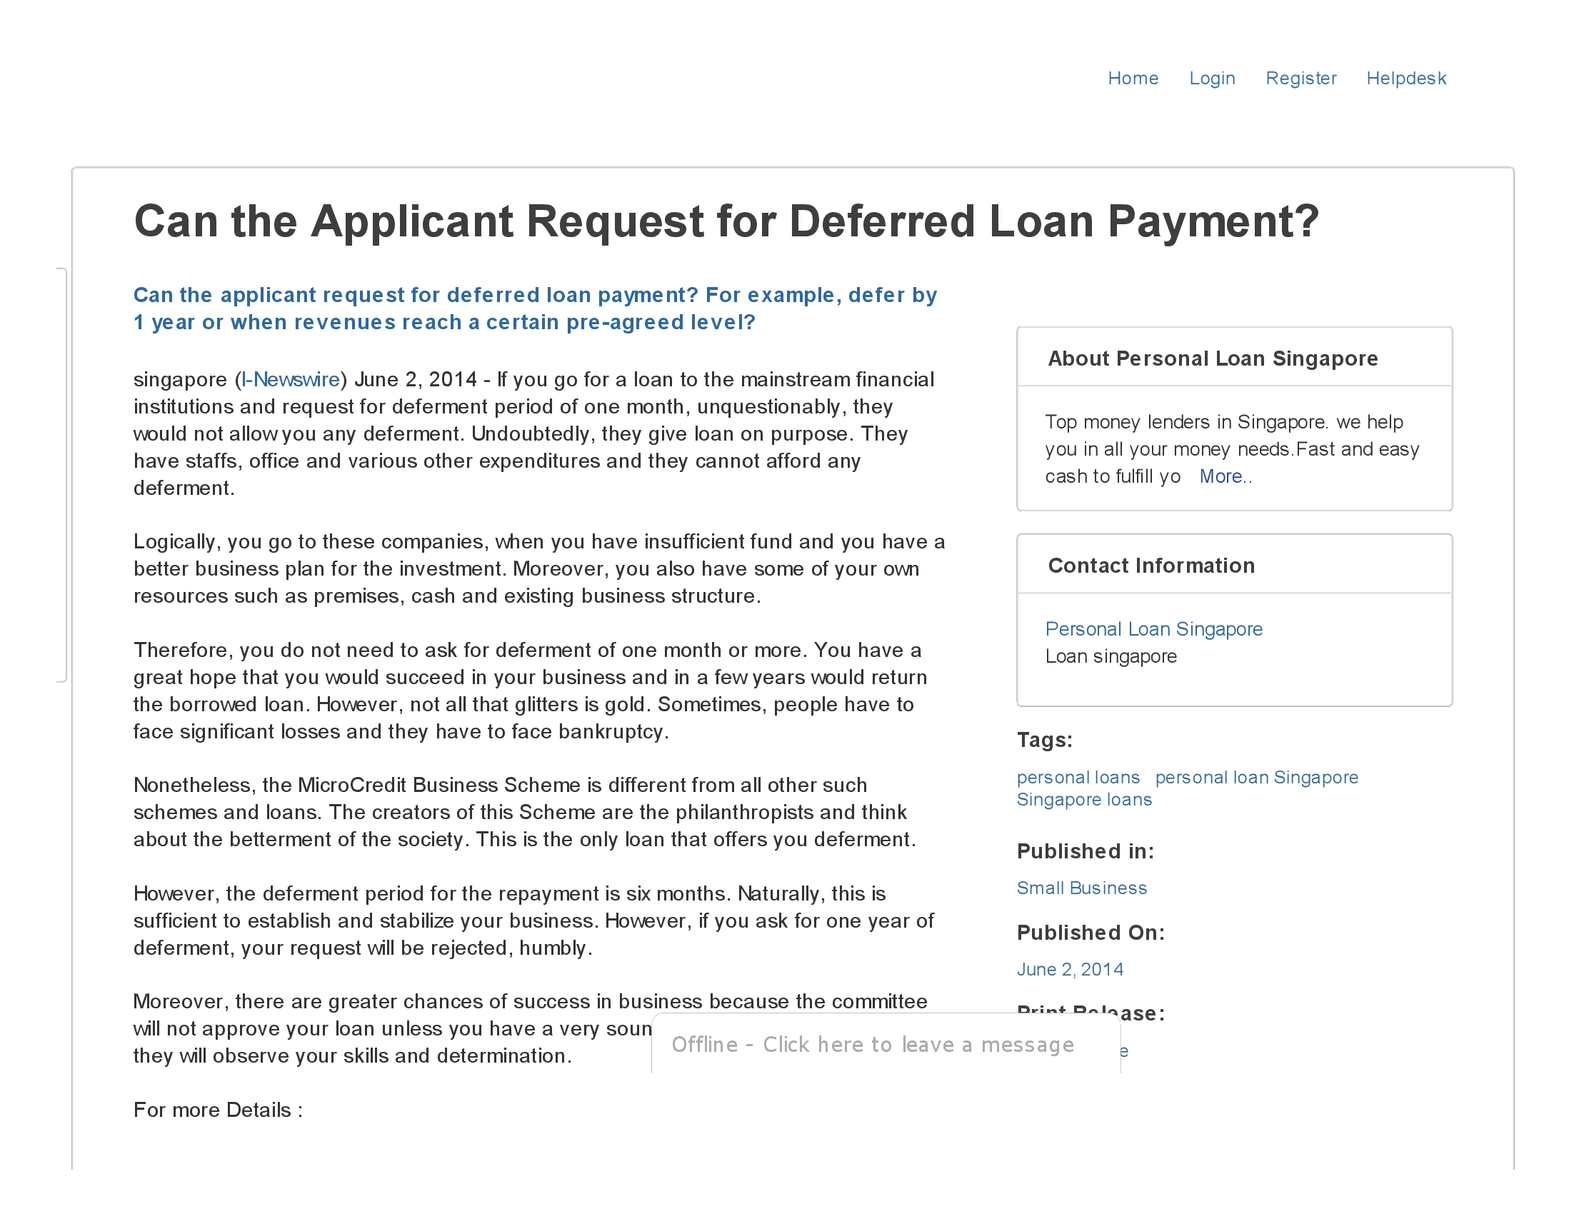 Calaméo - Can the Applicant Request for Deferred Loan Payment?